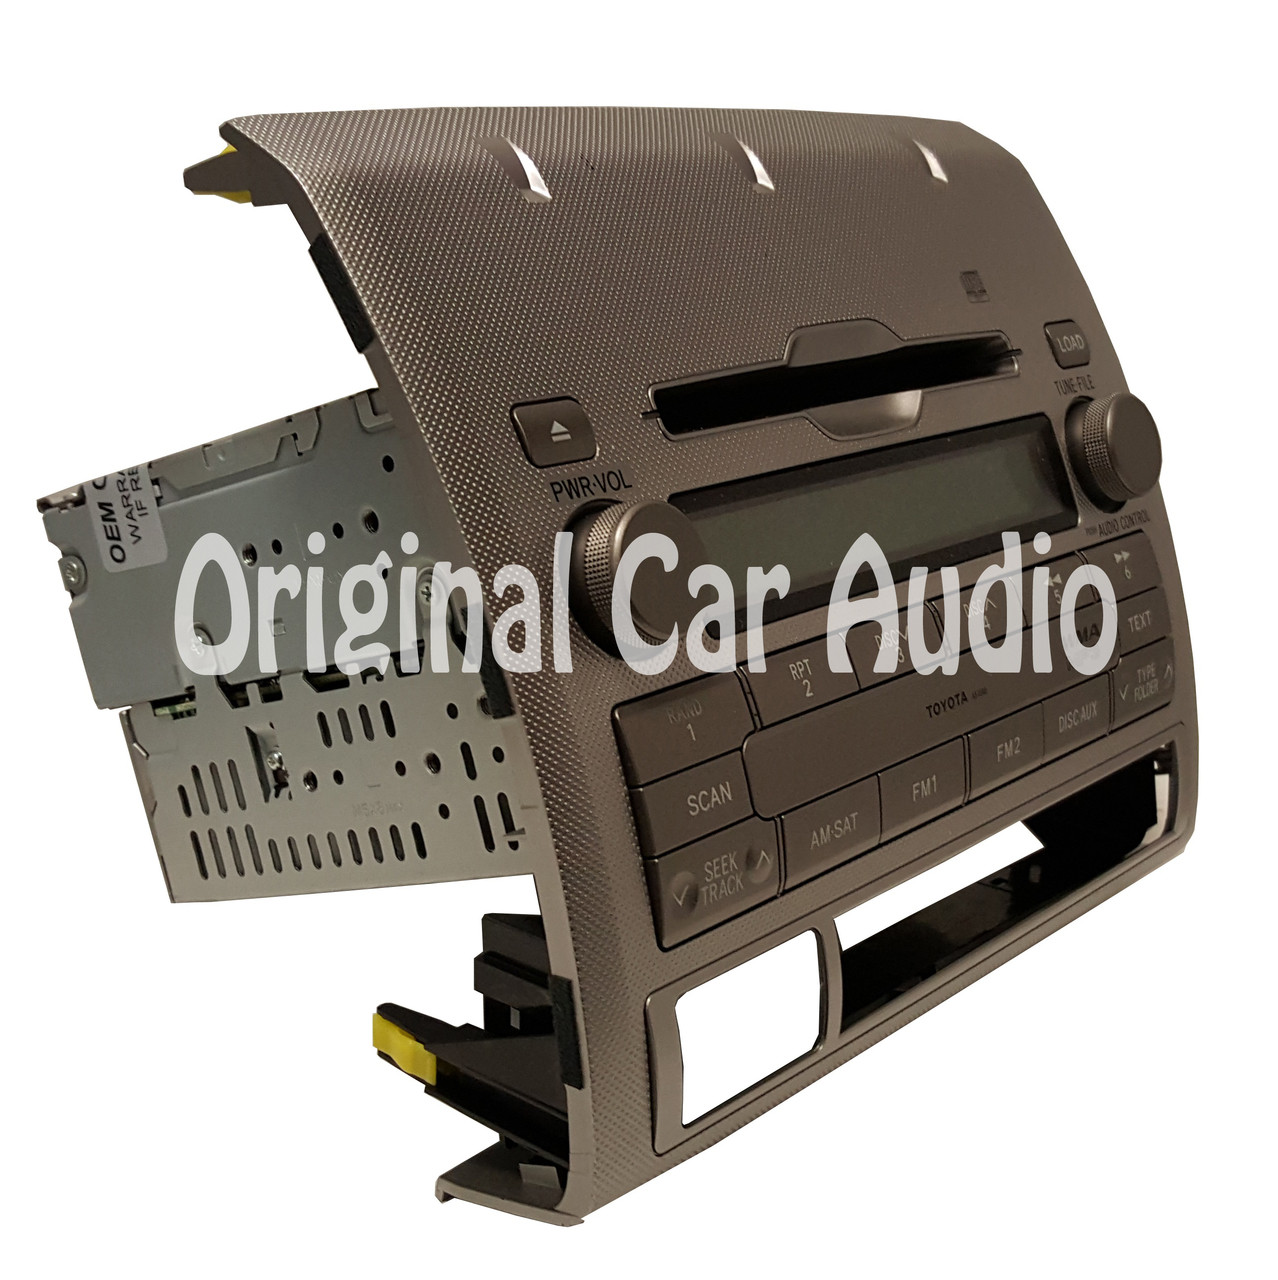 Toyota Tacoma OEM Satellite Radio Bluetooth MP3 CD Player 86120-04200 A518A8